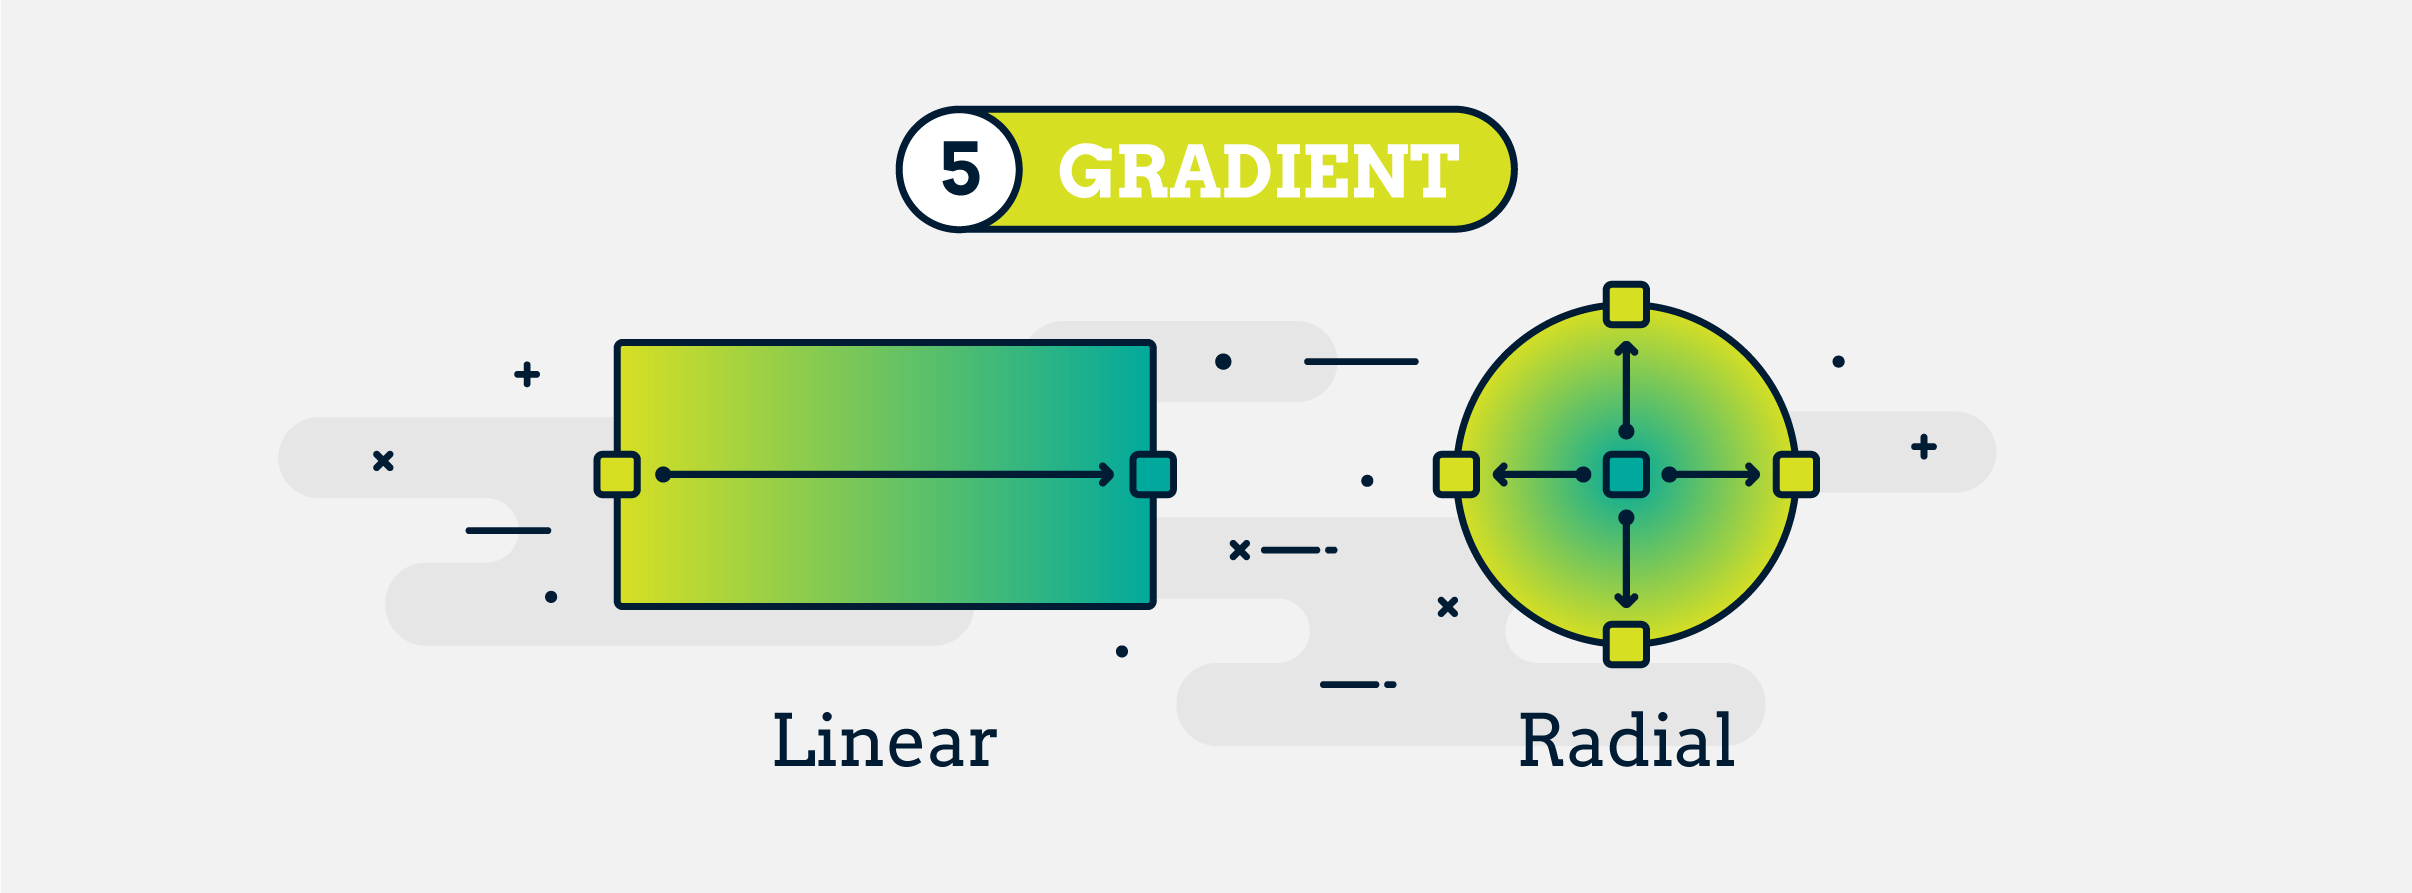 Design terms - gradient